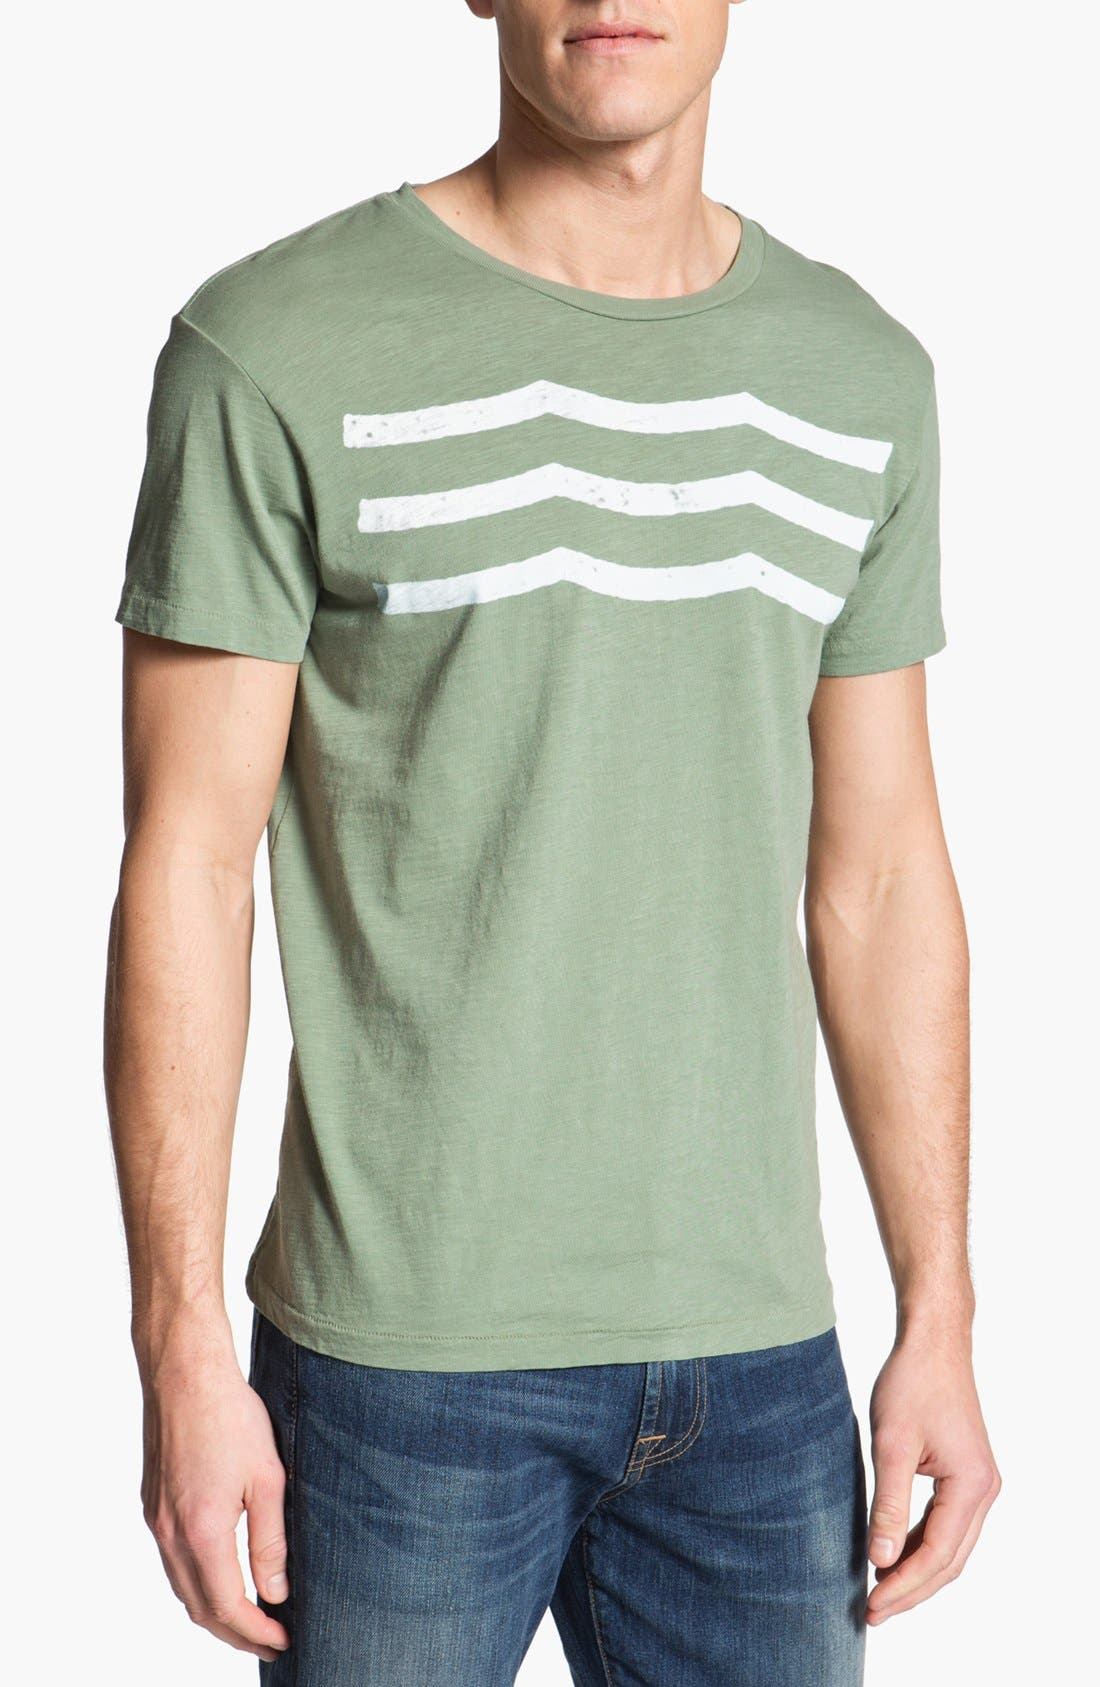 Alternate Image 1 Selected - Sol Angeles 'Waves' Graphic T-Shirt